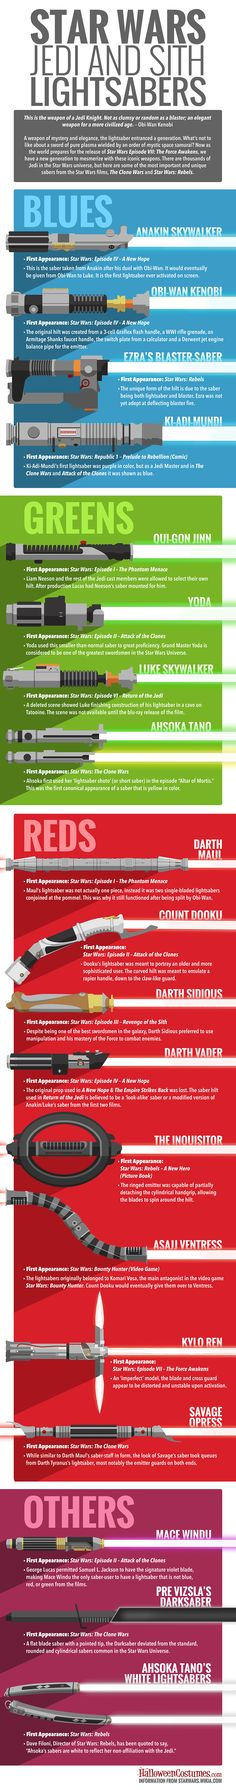 Star Wars Lightsabers Infographic